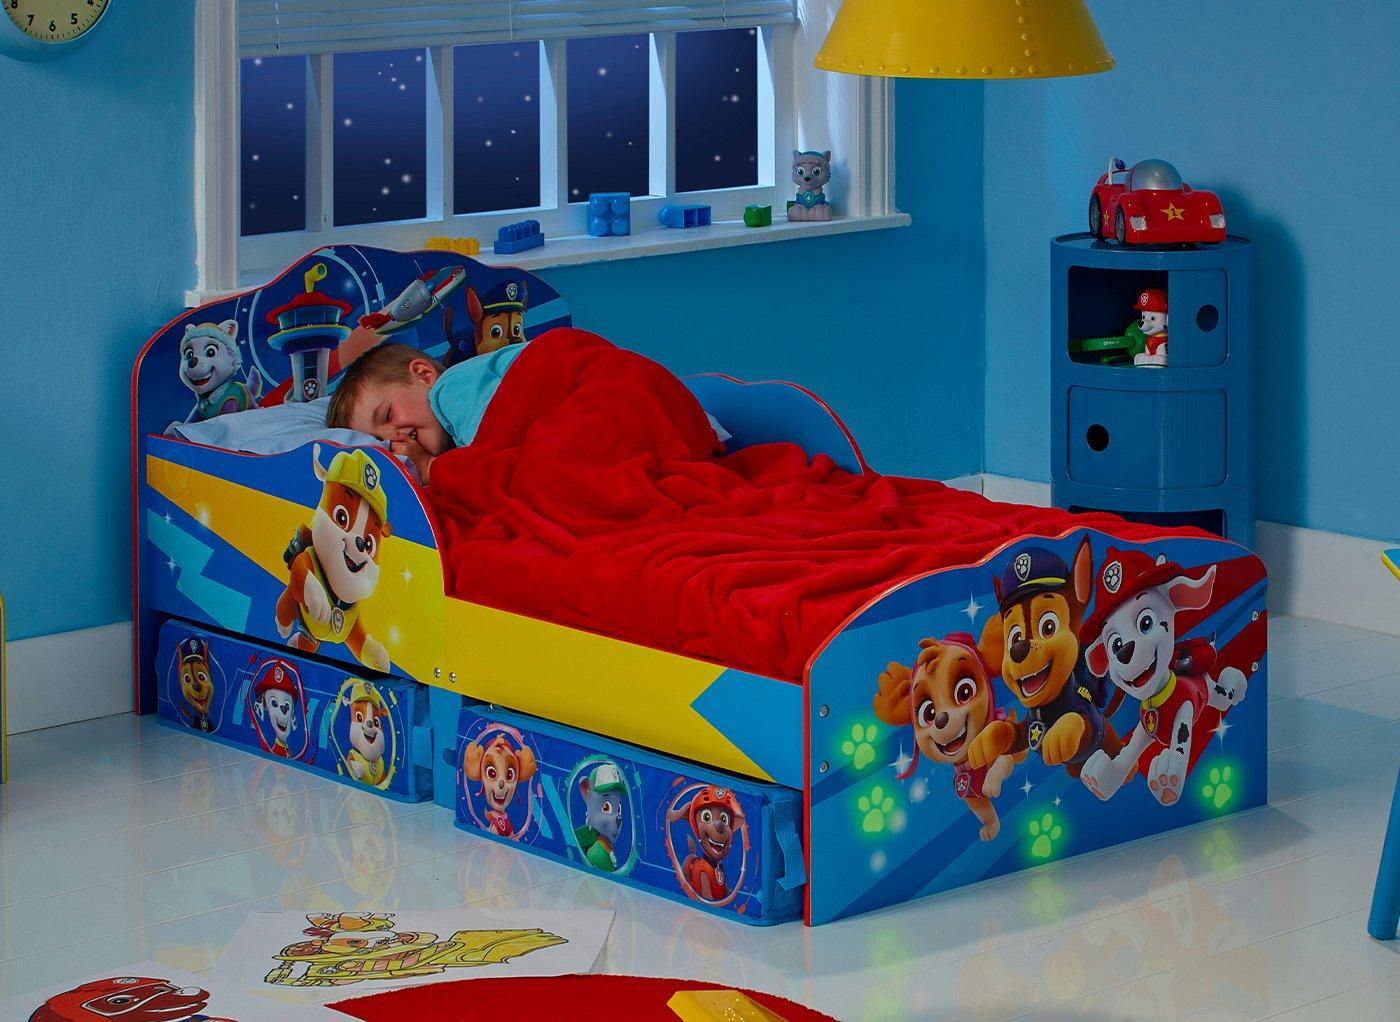 Dreams Paw Patrol Toddler Bed with Storage from £119